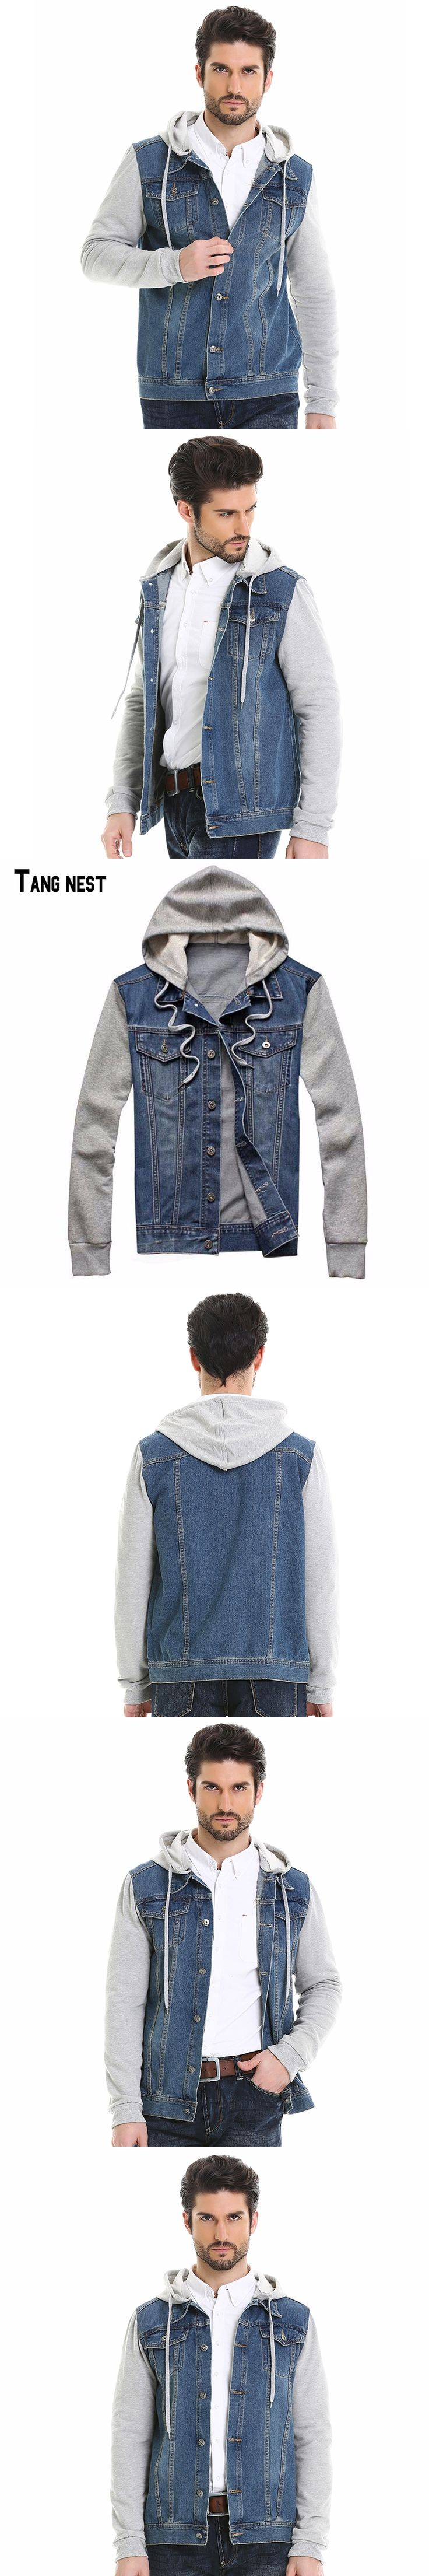 TANGNEST 2017 New Fashion Men's Hoodie Cowboy Jeans Jackets Male Denim Plus Size Jeans Jacket Hoodie Detachable MWJ1291